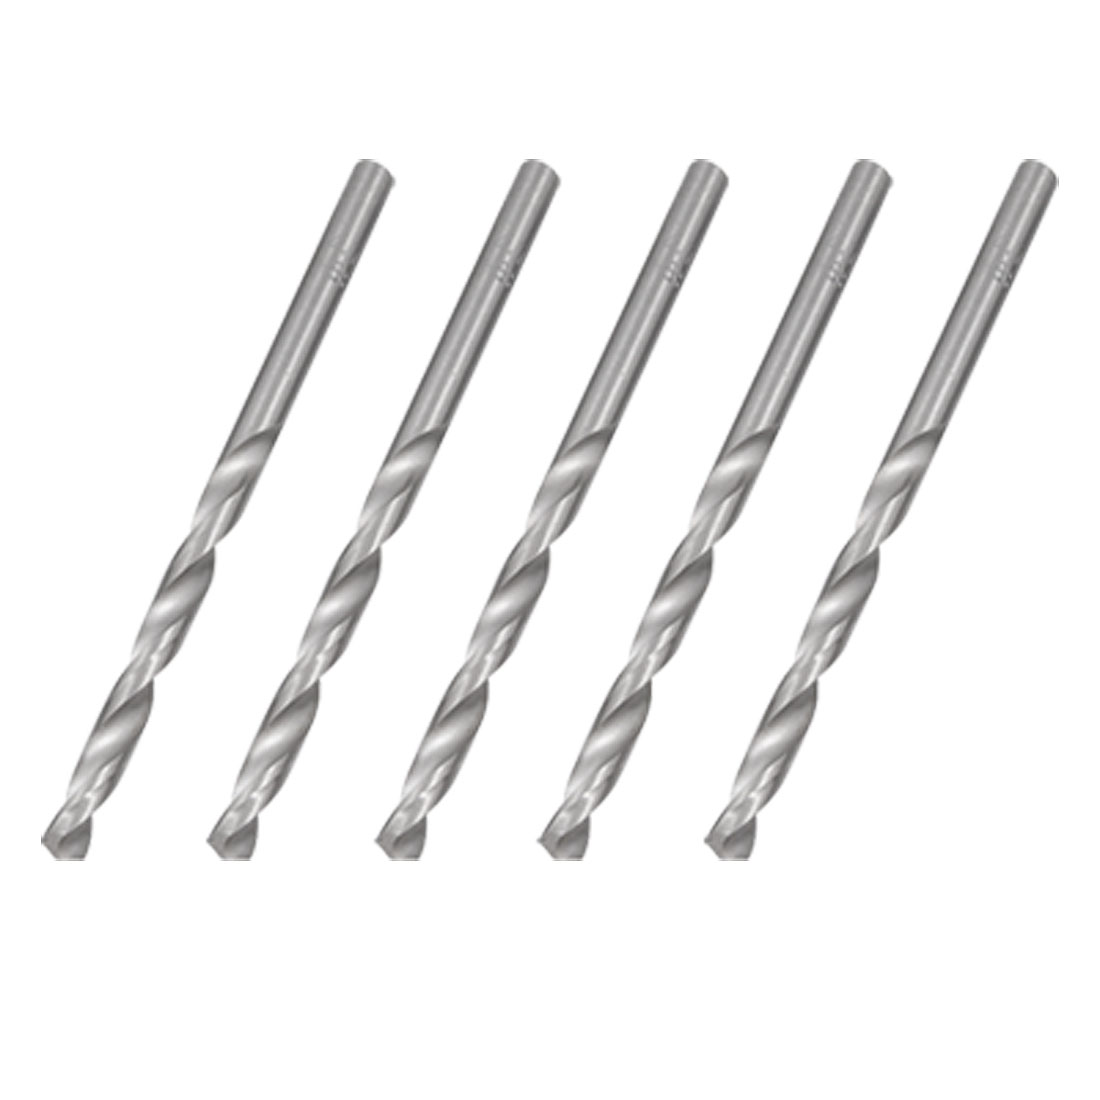 5 PCS Straight Shank 5.8mm Hole Boring Twist Drill Bit